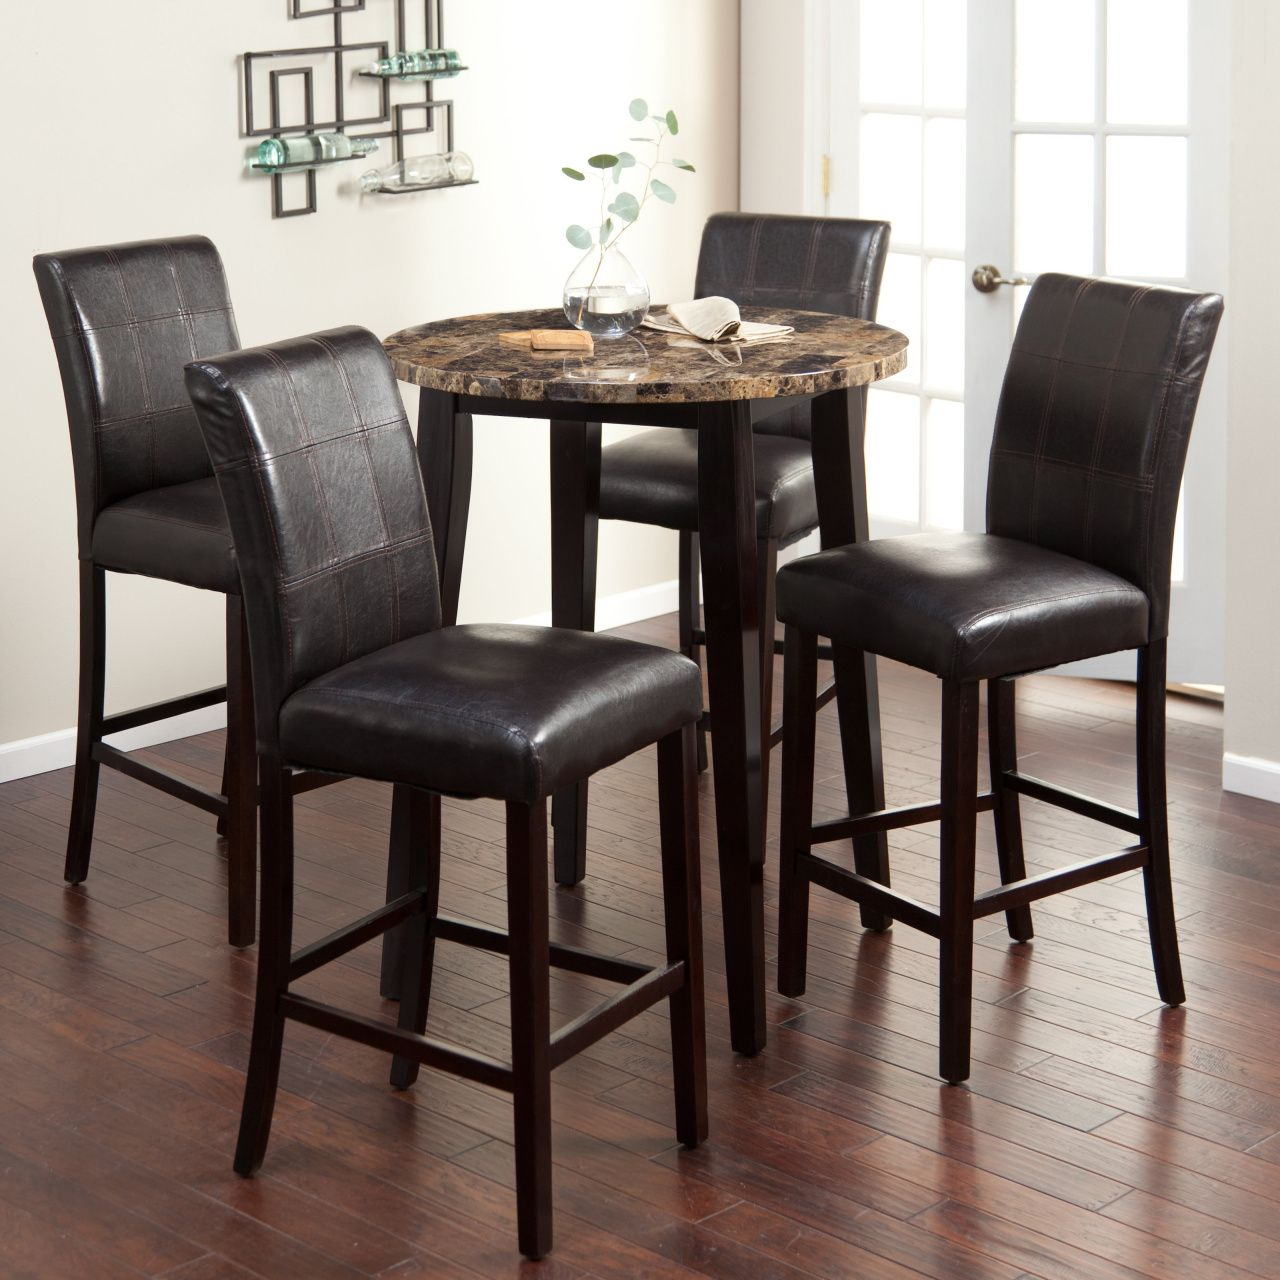 Bar Tables And Chairs Home Office Desk Furniture Check More At Http